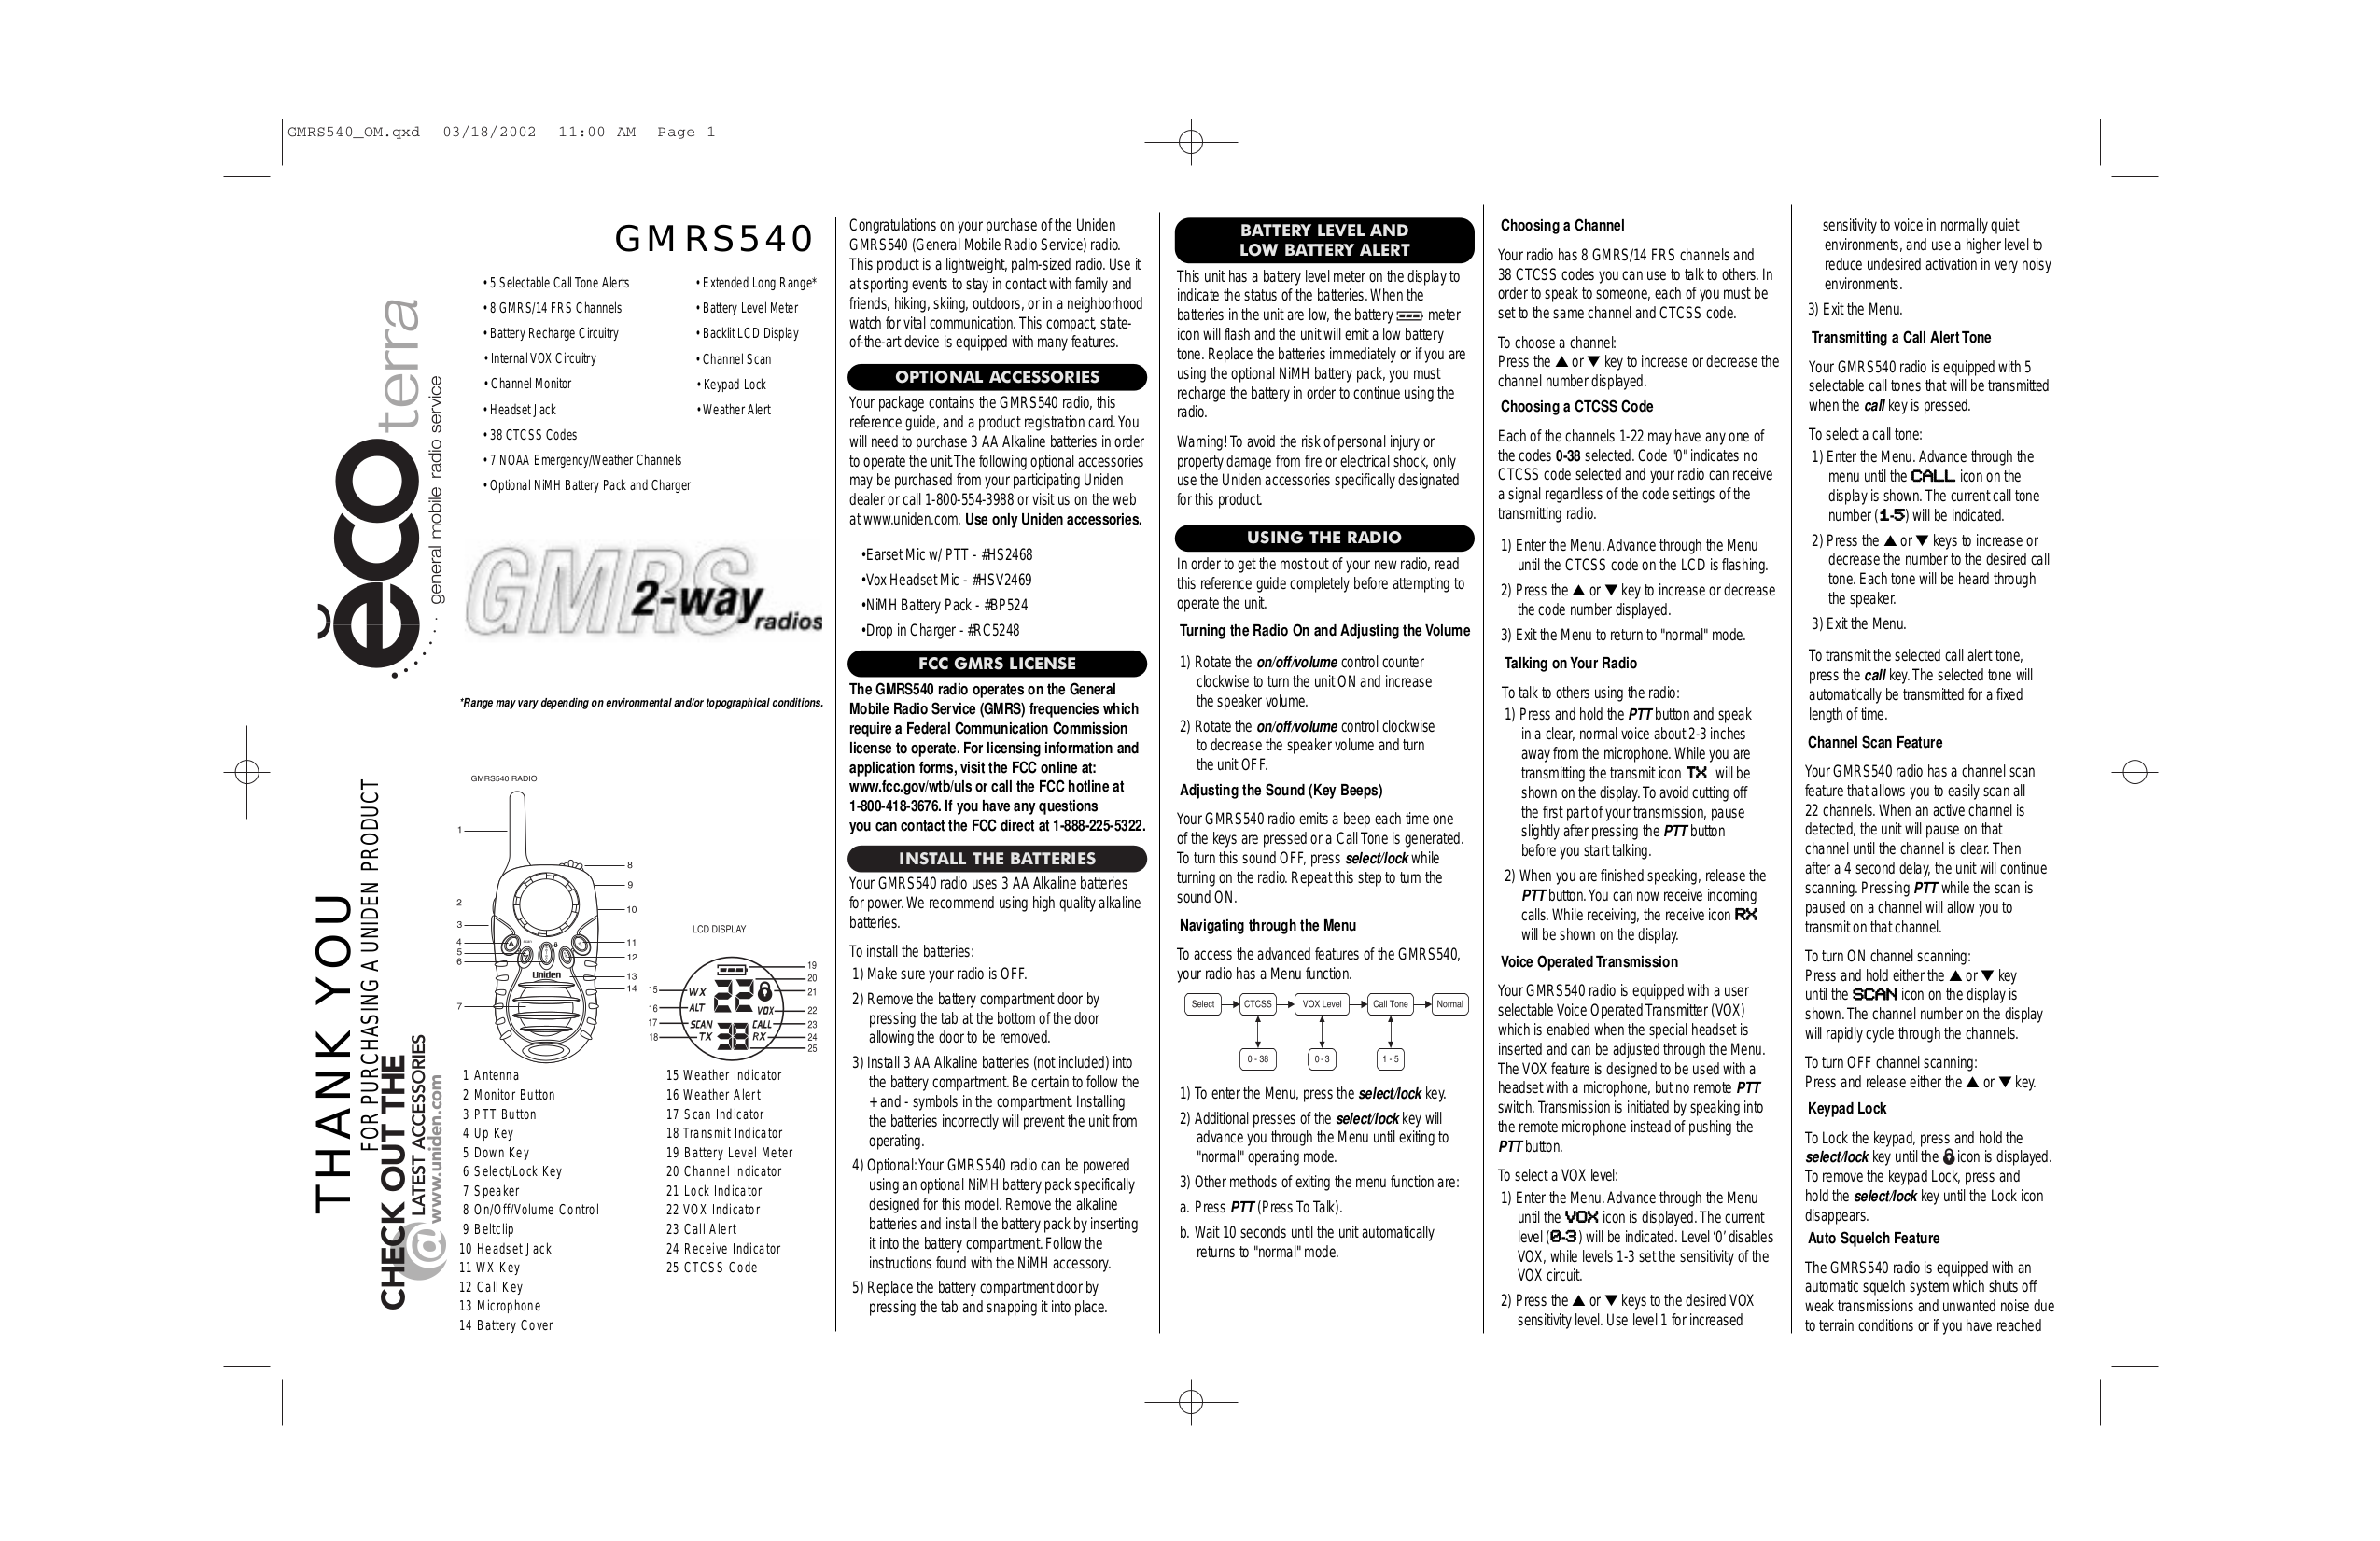 pdf for Uniden 2-way Radio GMRS540-2 manual